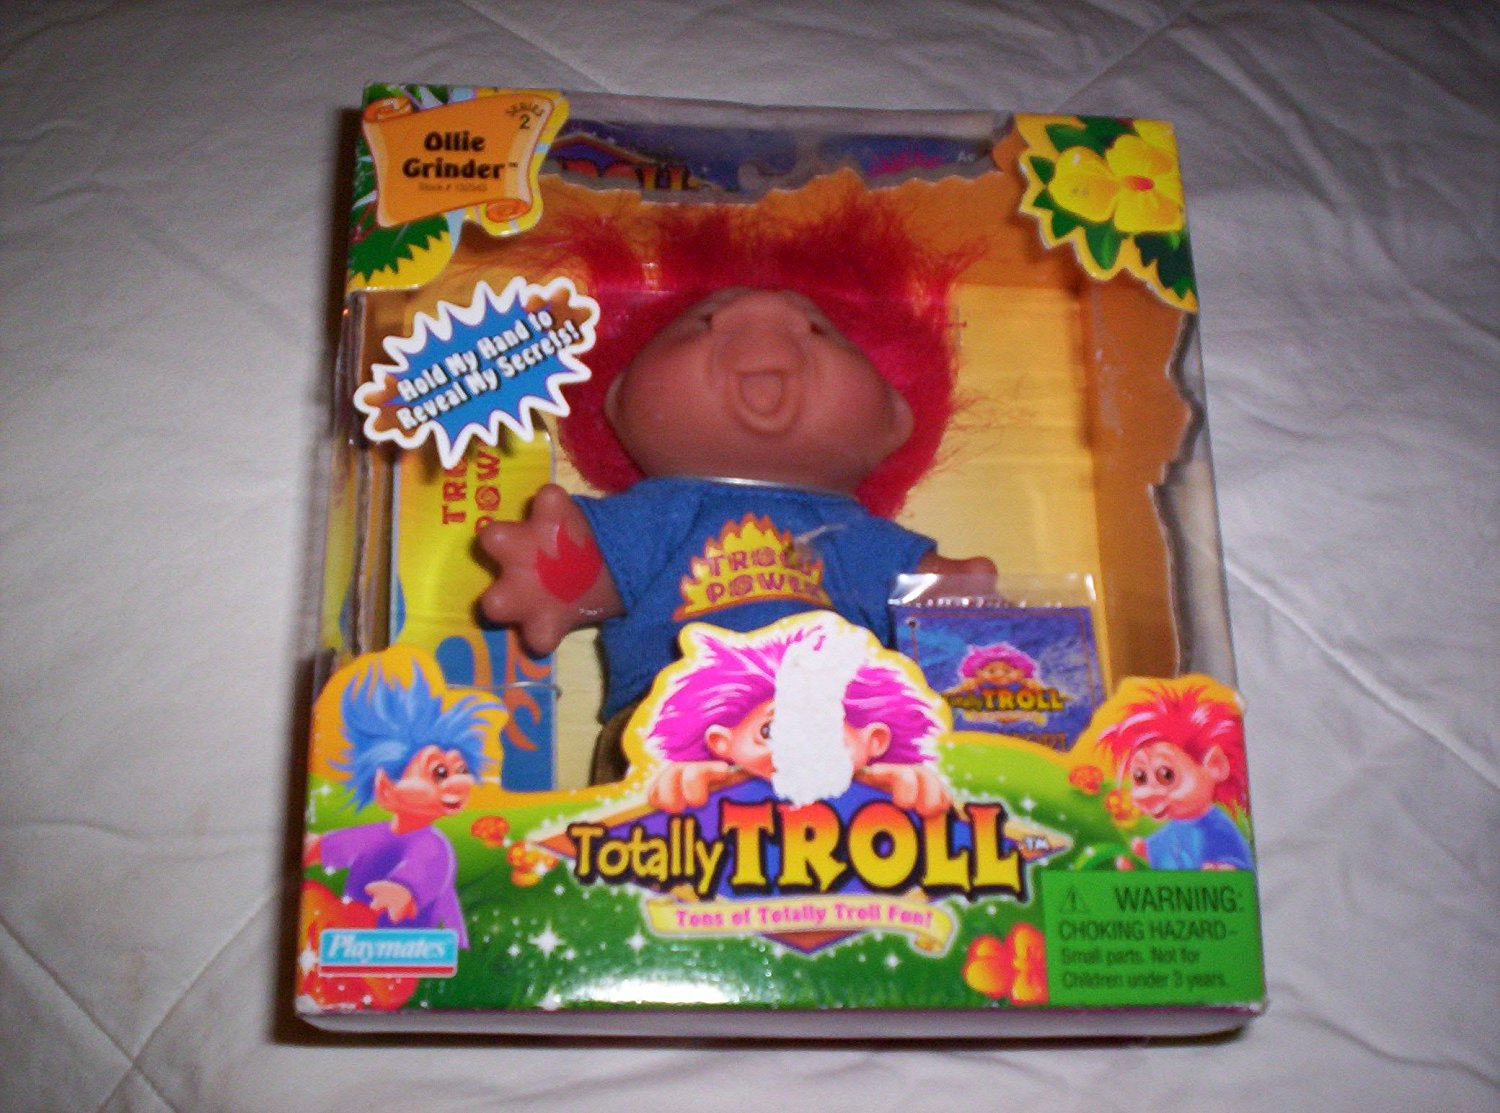 Totally Troll Doll-Ollie Grinder, Ages 4+ By PlaymatesDam